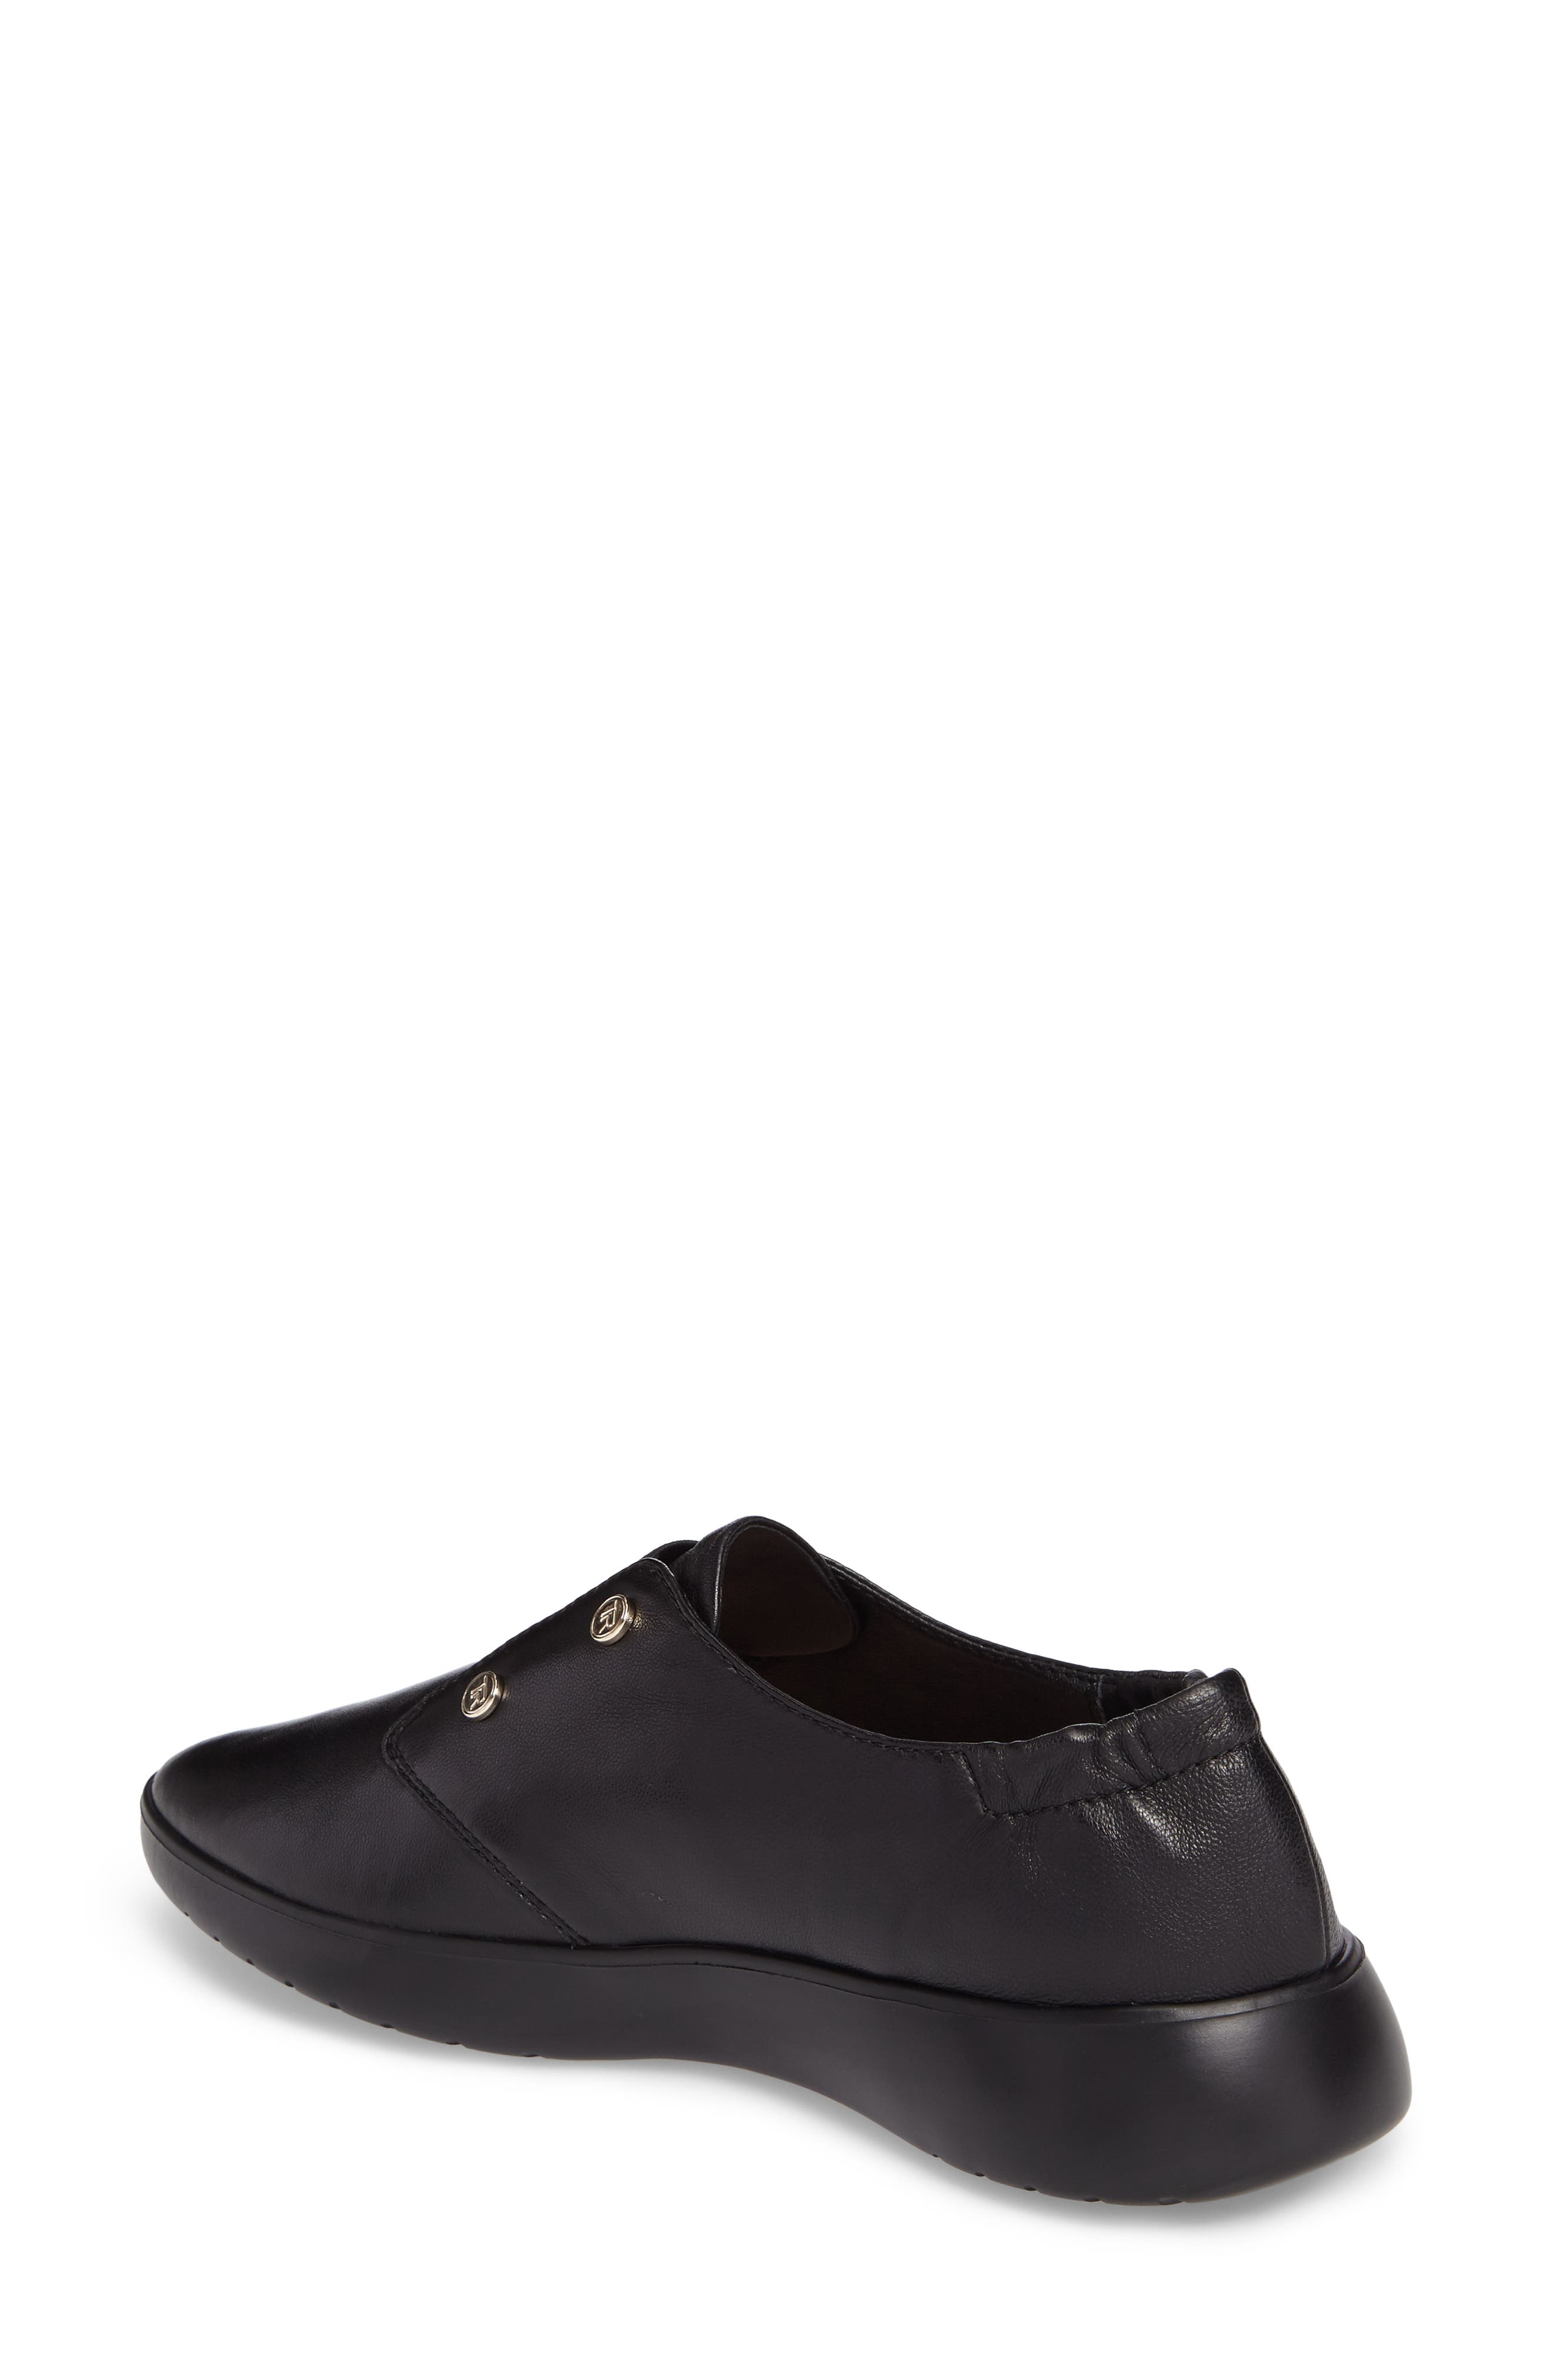 Darcy Slip-On Oxford,                             Alternate thumbnail 2, color,                             Black Leather